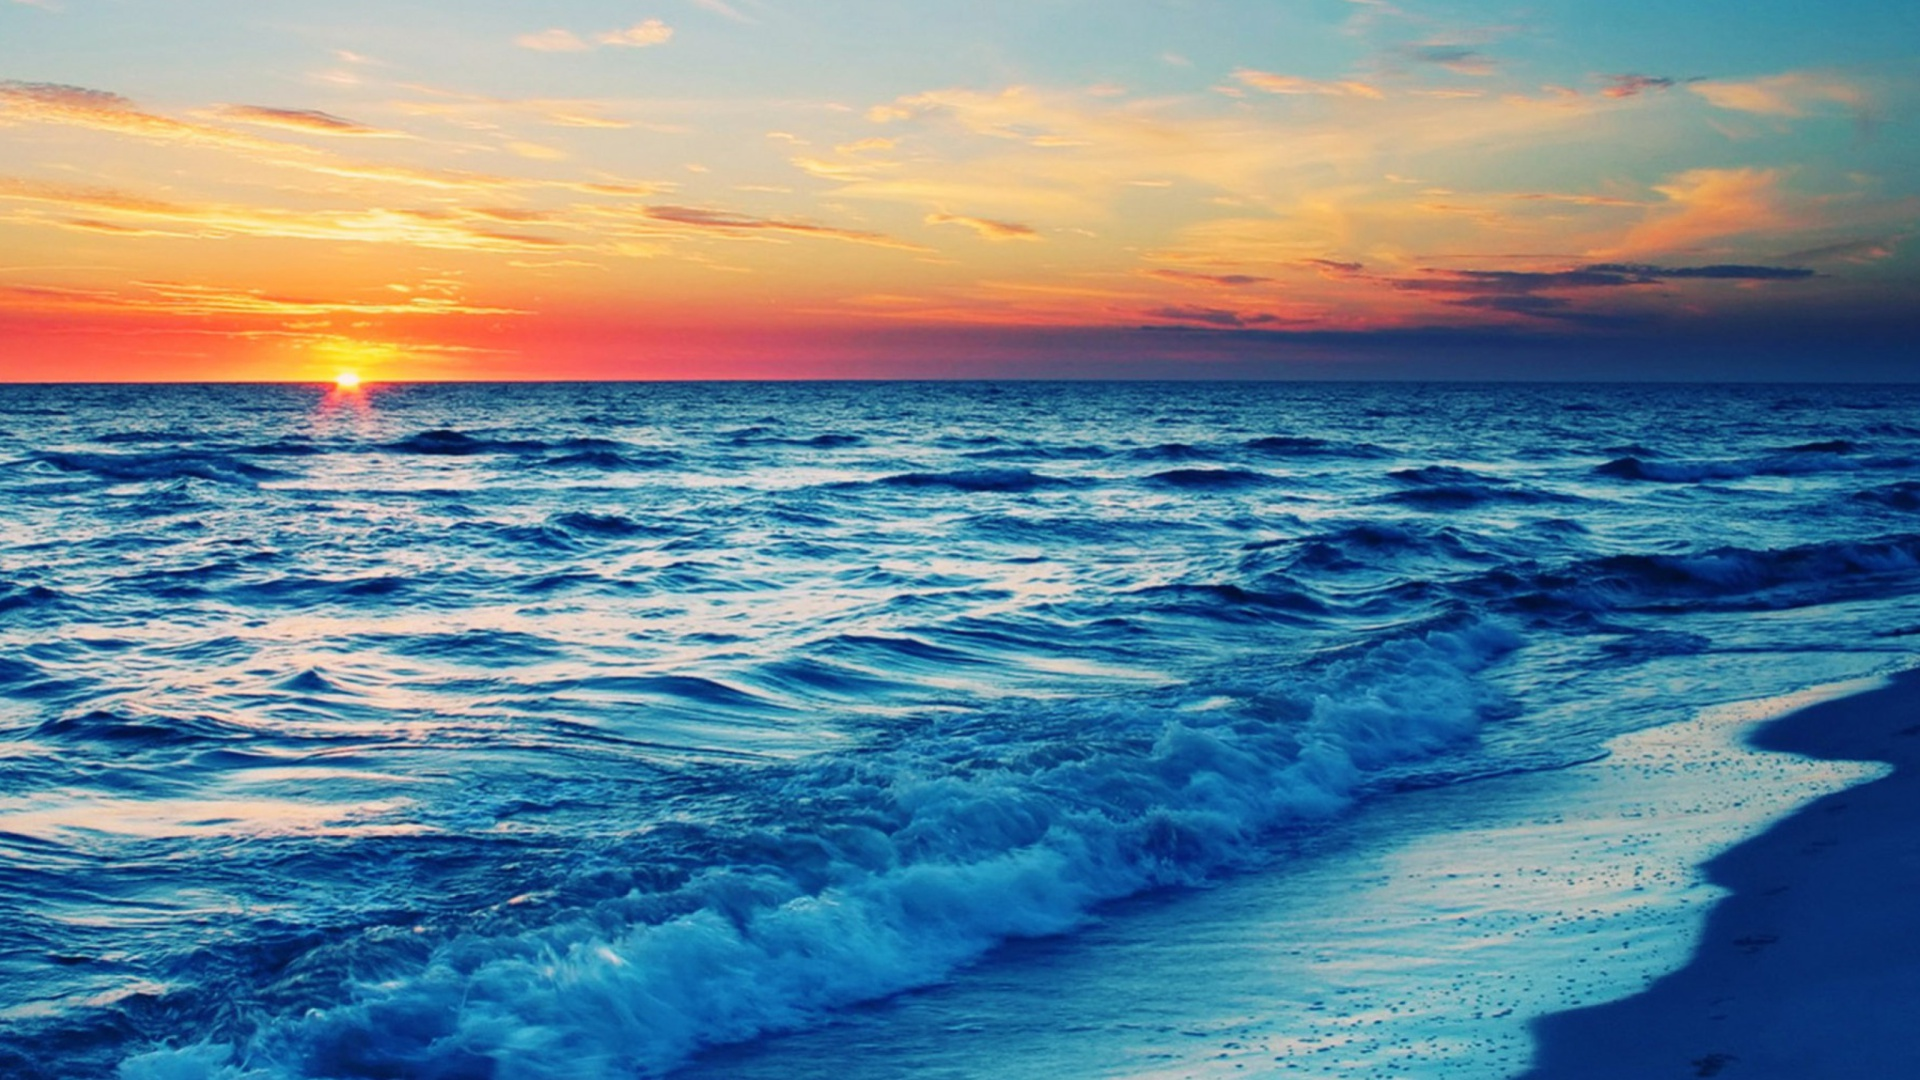 Download Beach Sea Wallpaper Gallery: Ocean Screensavers And Wallpaper